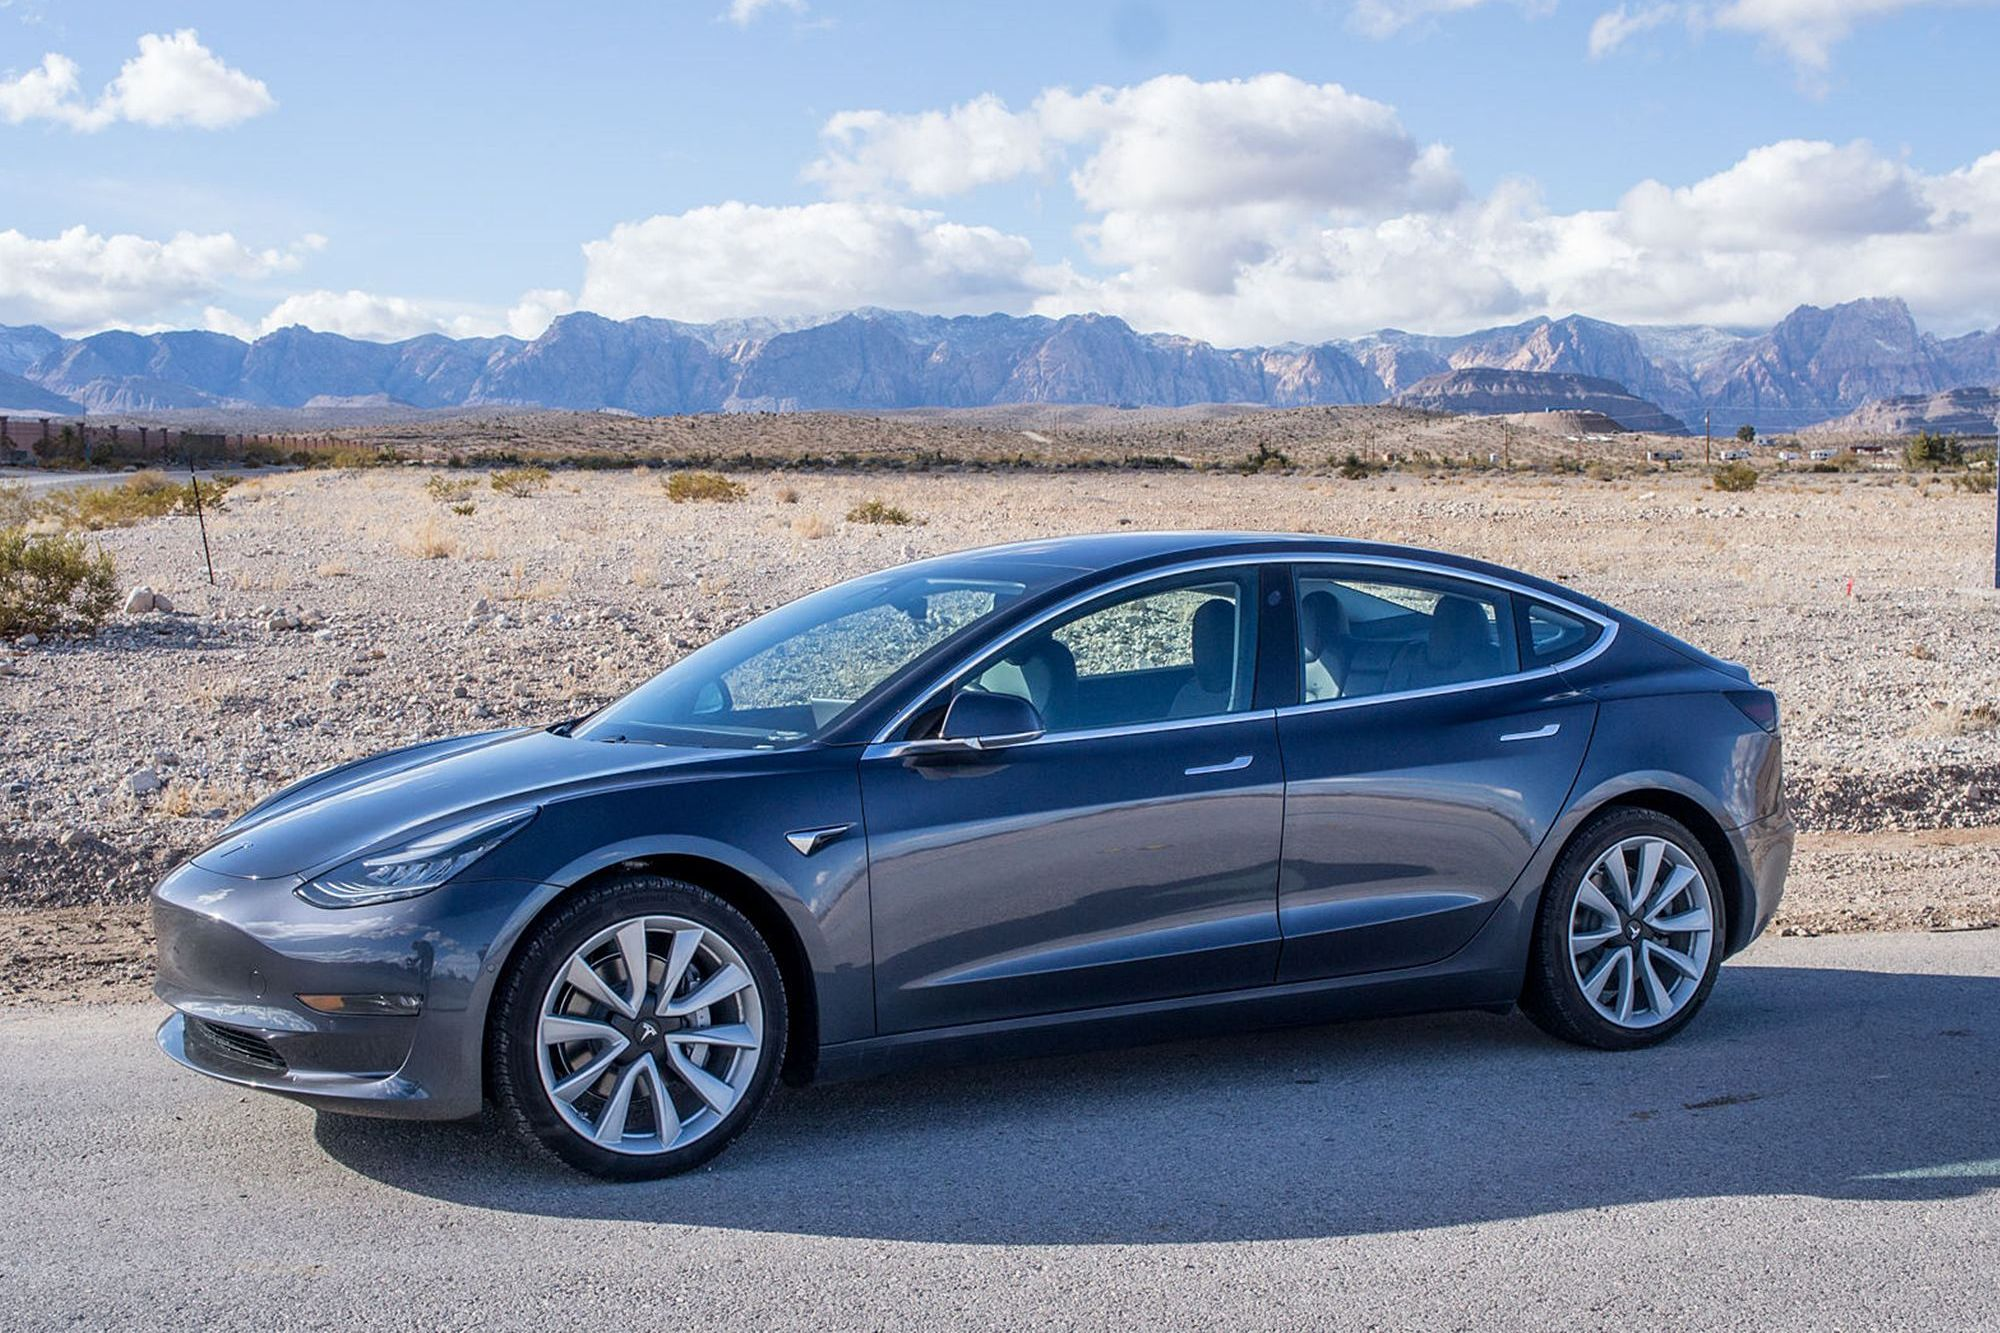 Tesla Launches Orders for the $35,000 Model 3